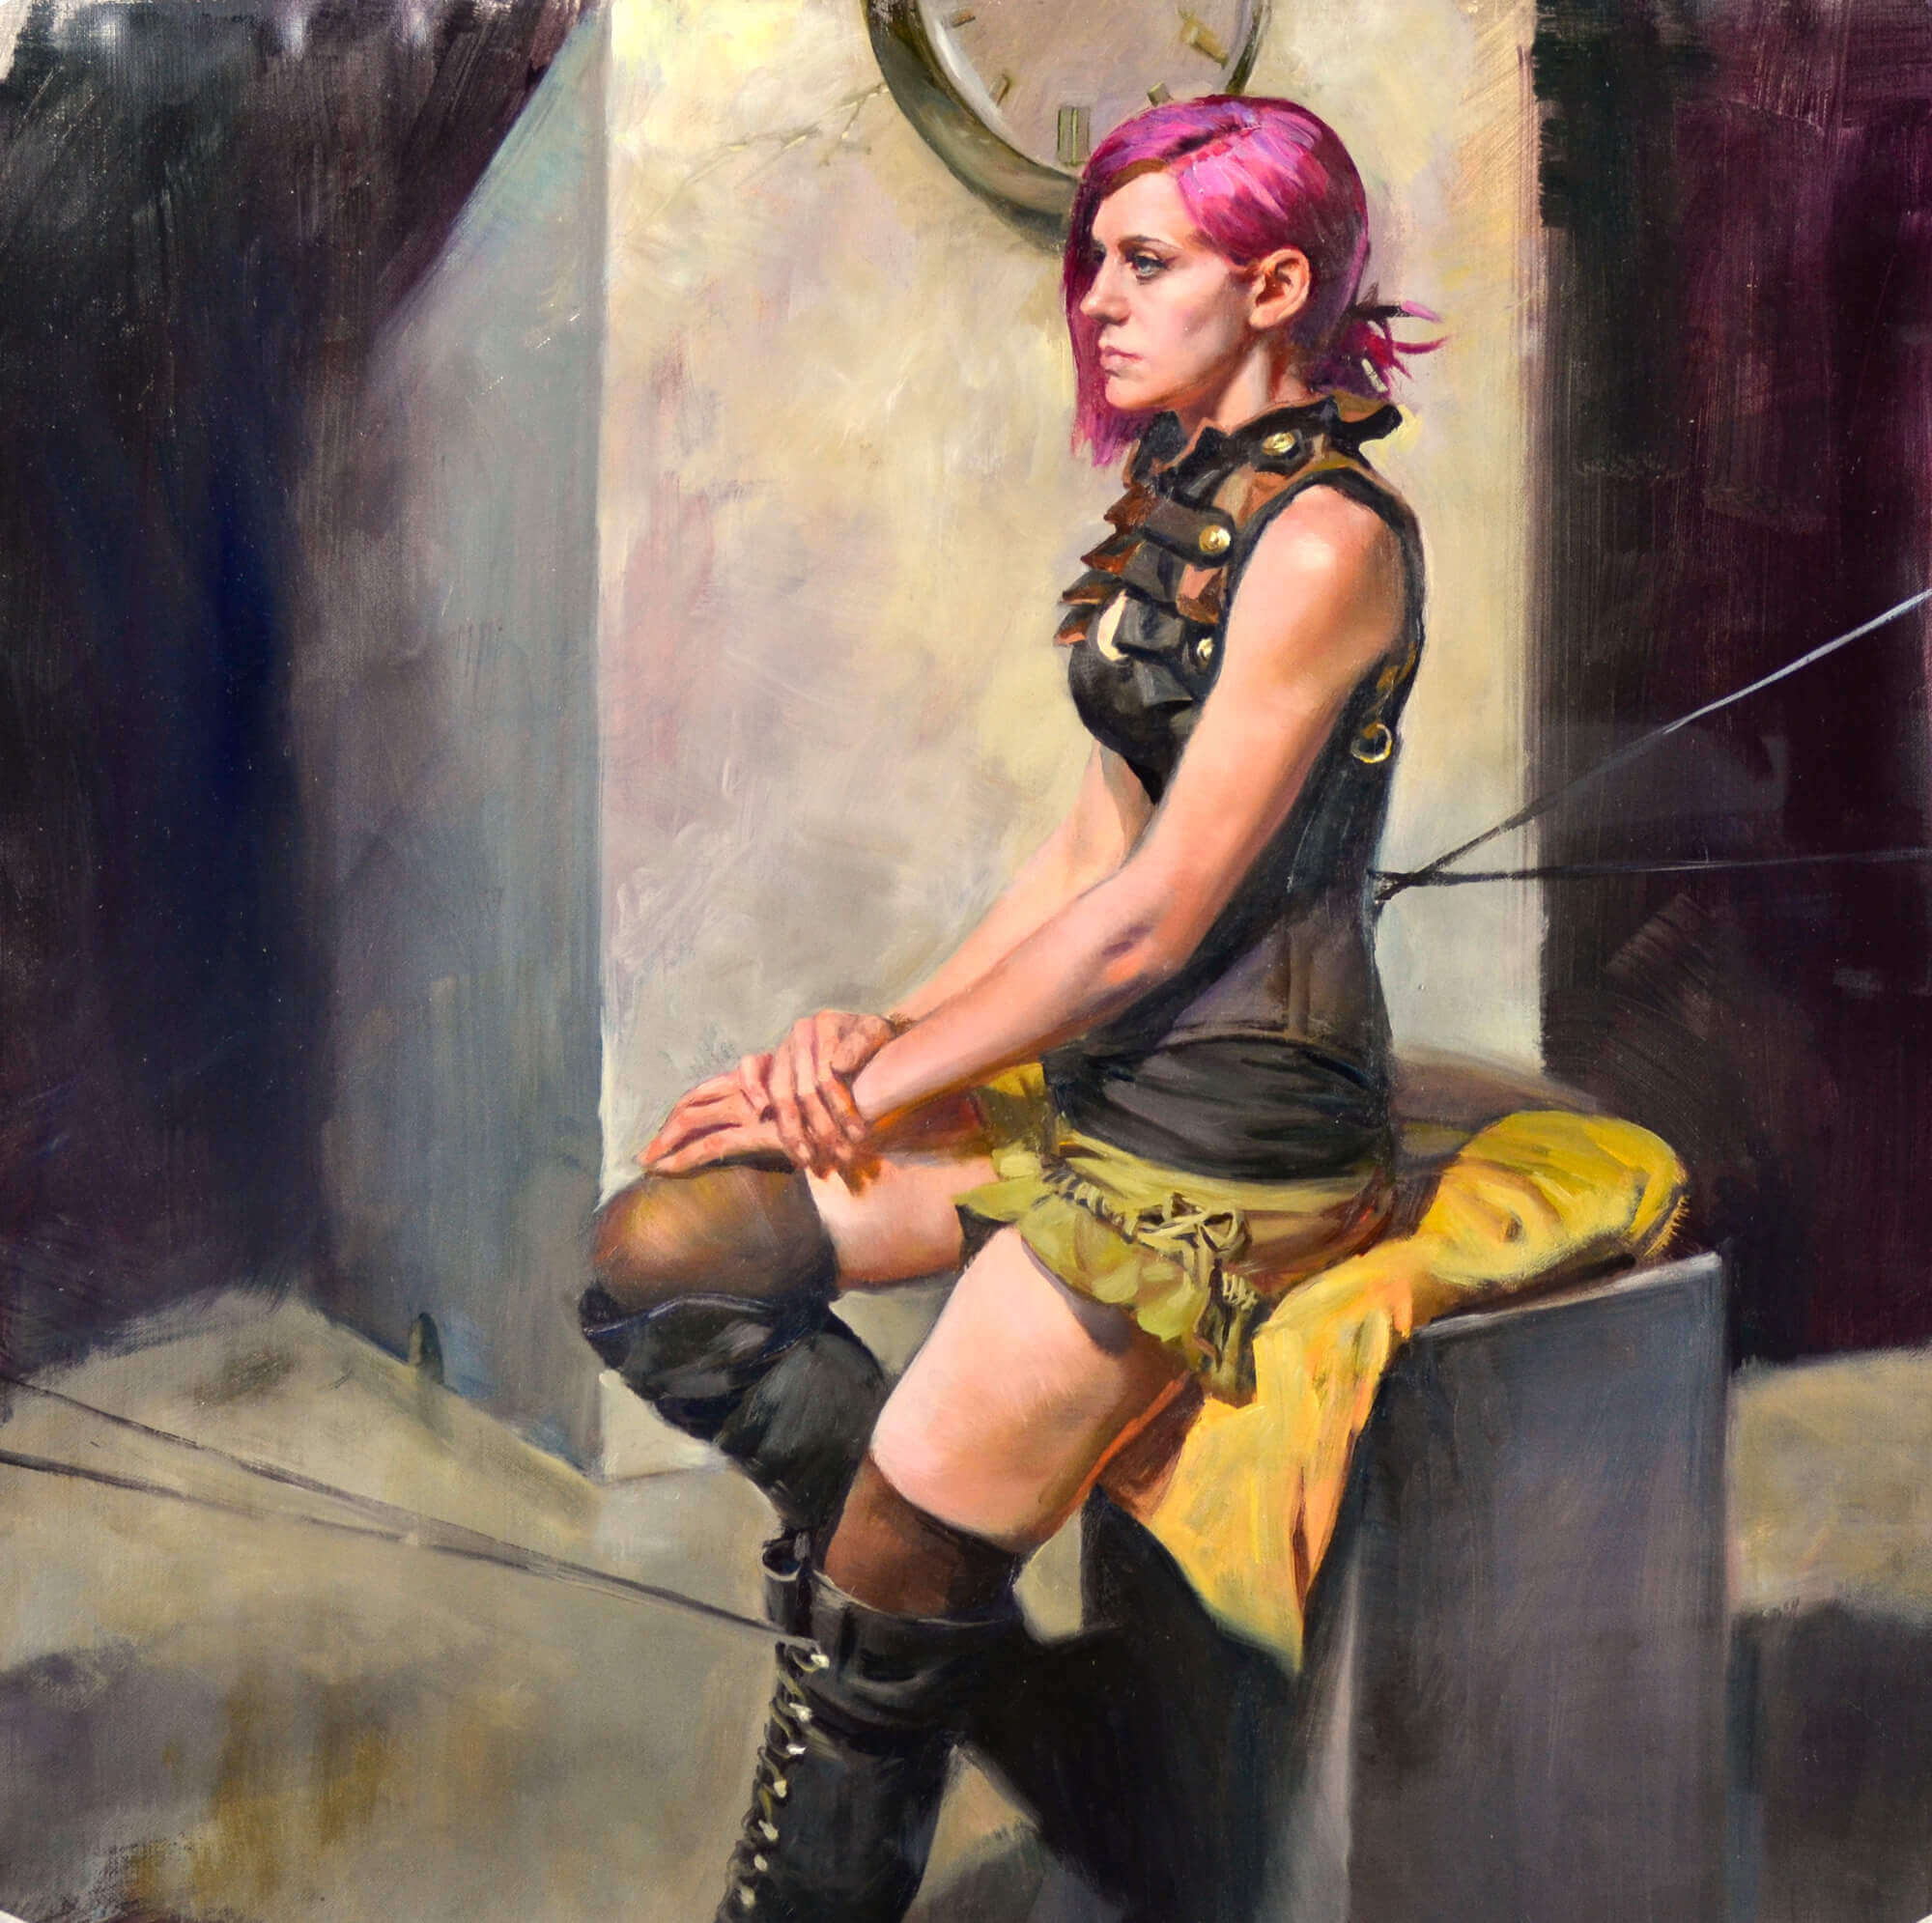 Figurative oil painting of a young woman with pink hair wearing a steampunk outfit with a clock in the background